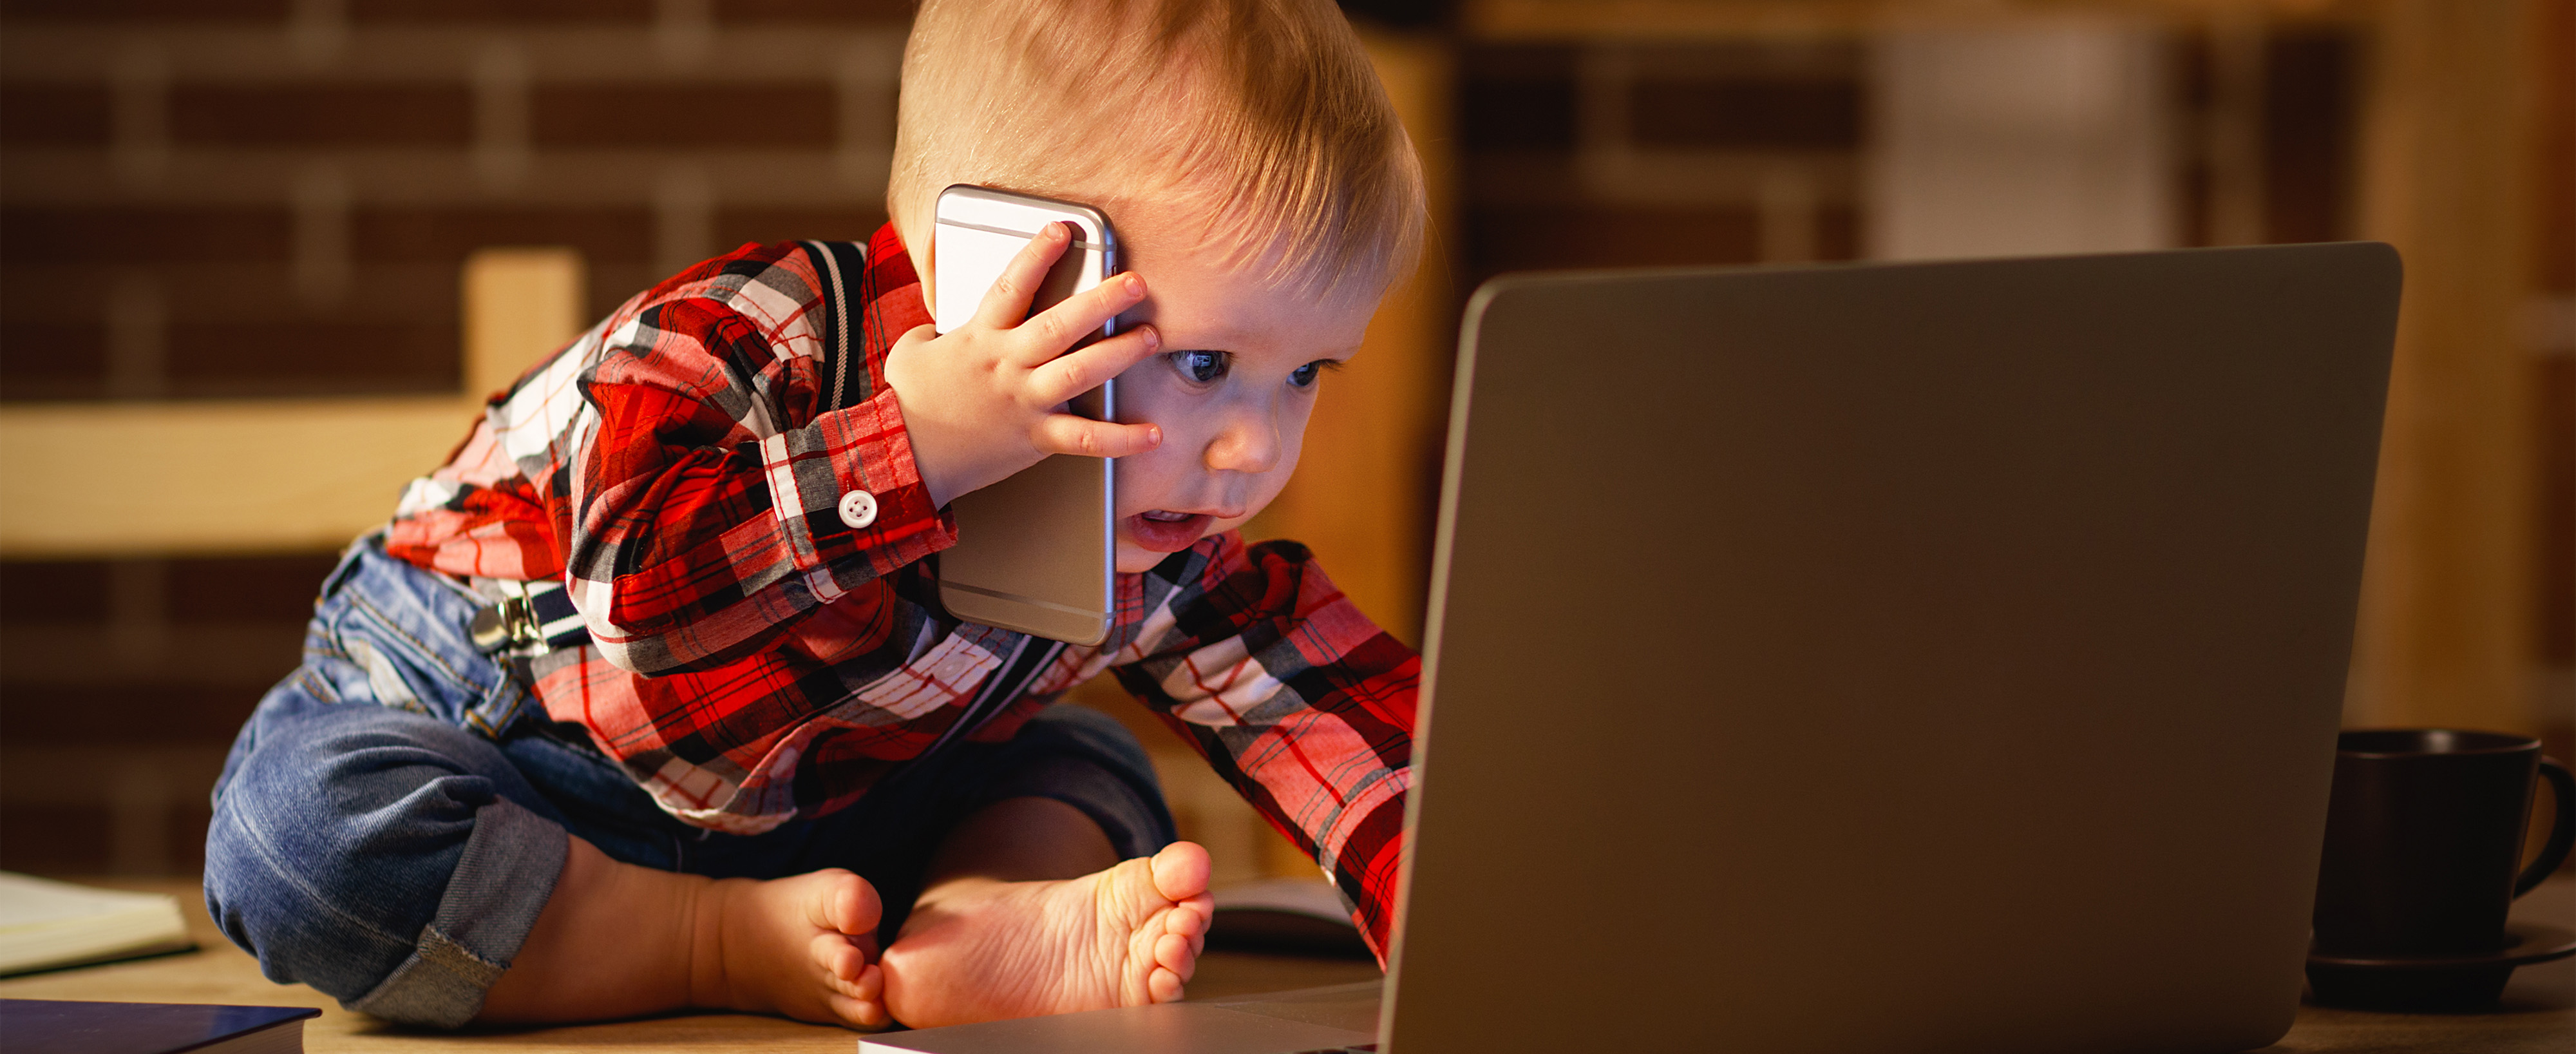 a toddler plays with a laptop and mobile phone